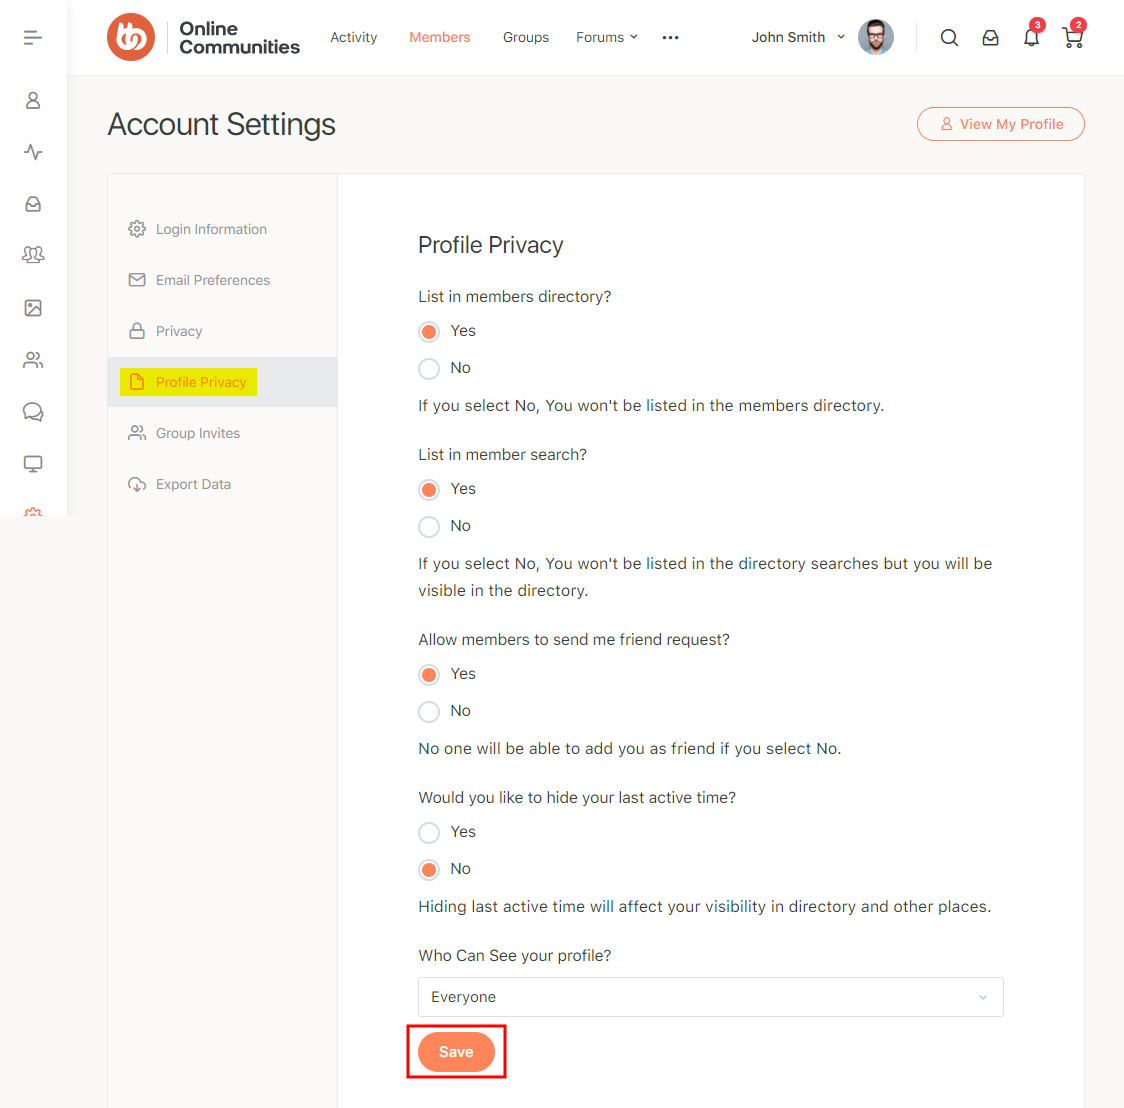 BuddyPress Profile Visibility Manager - Profile Privacy settings of a user